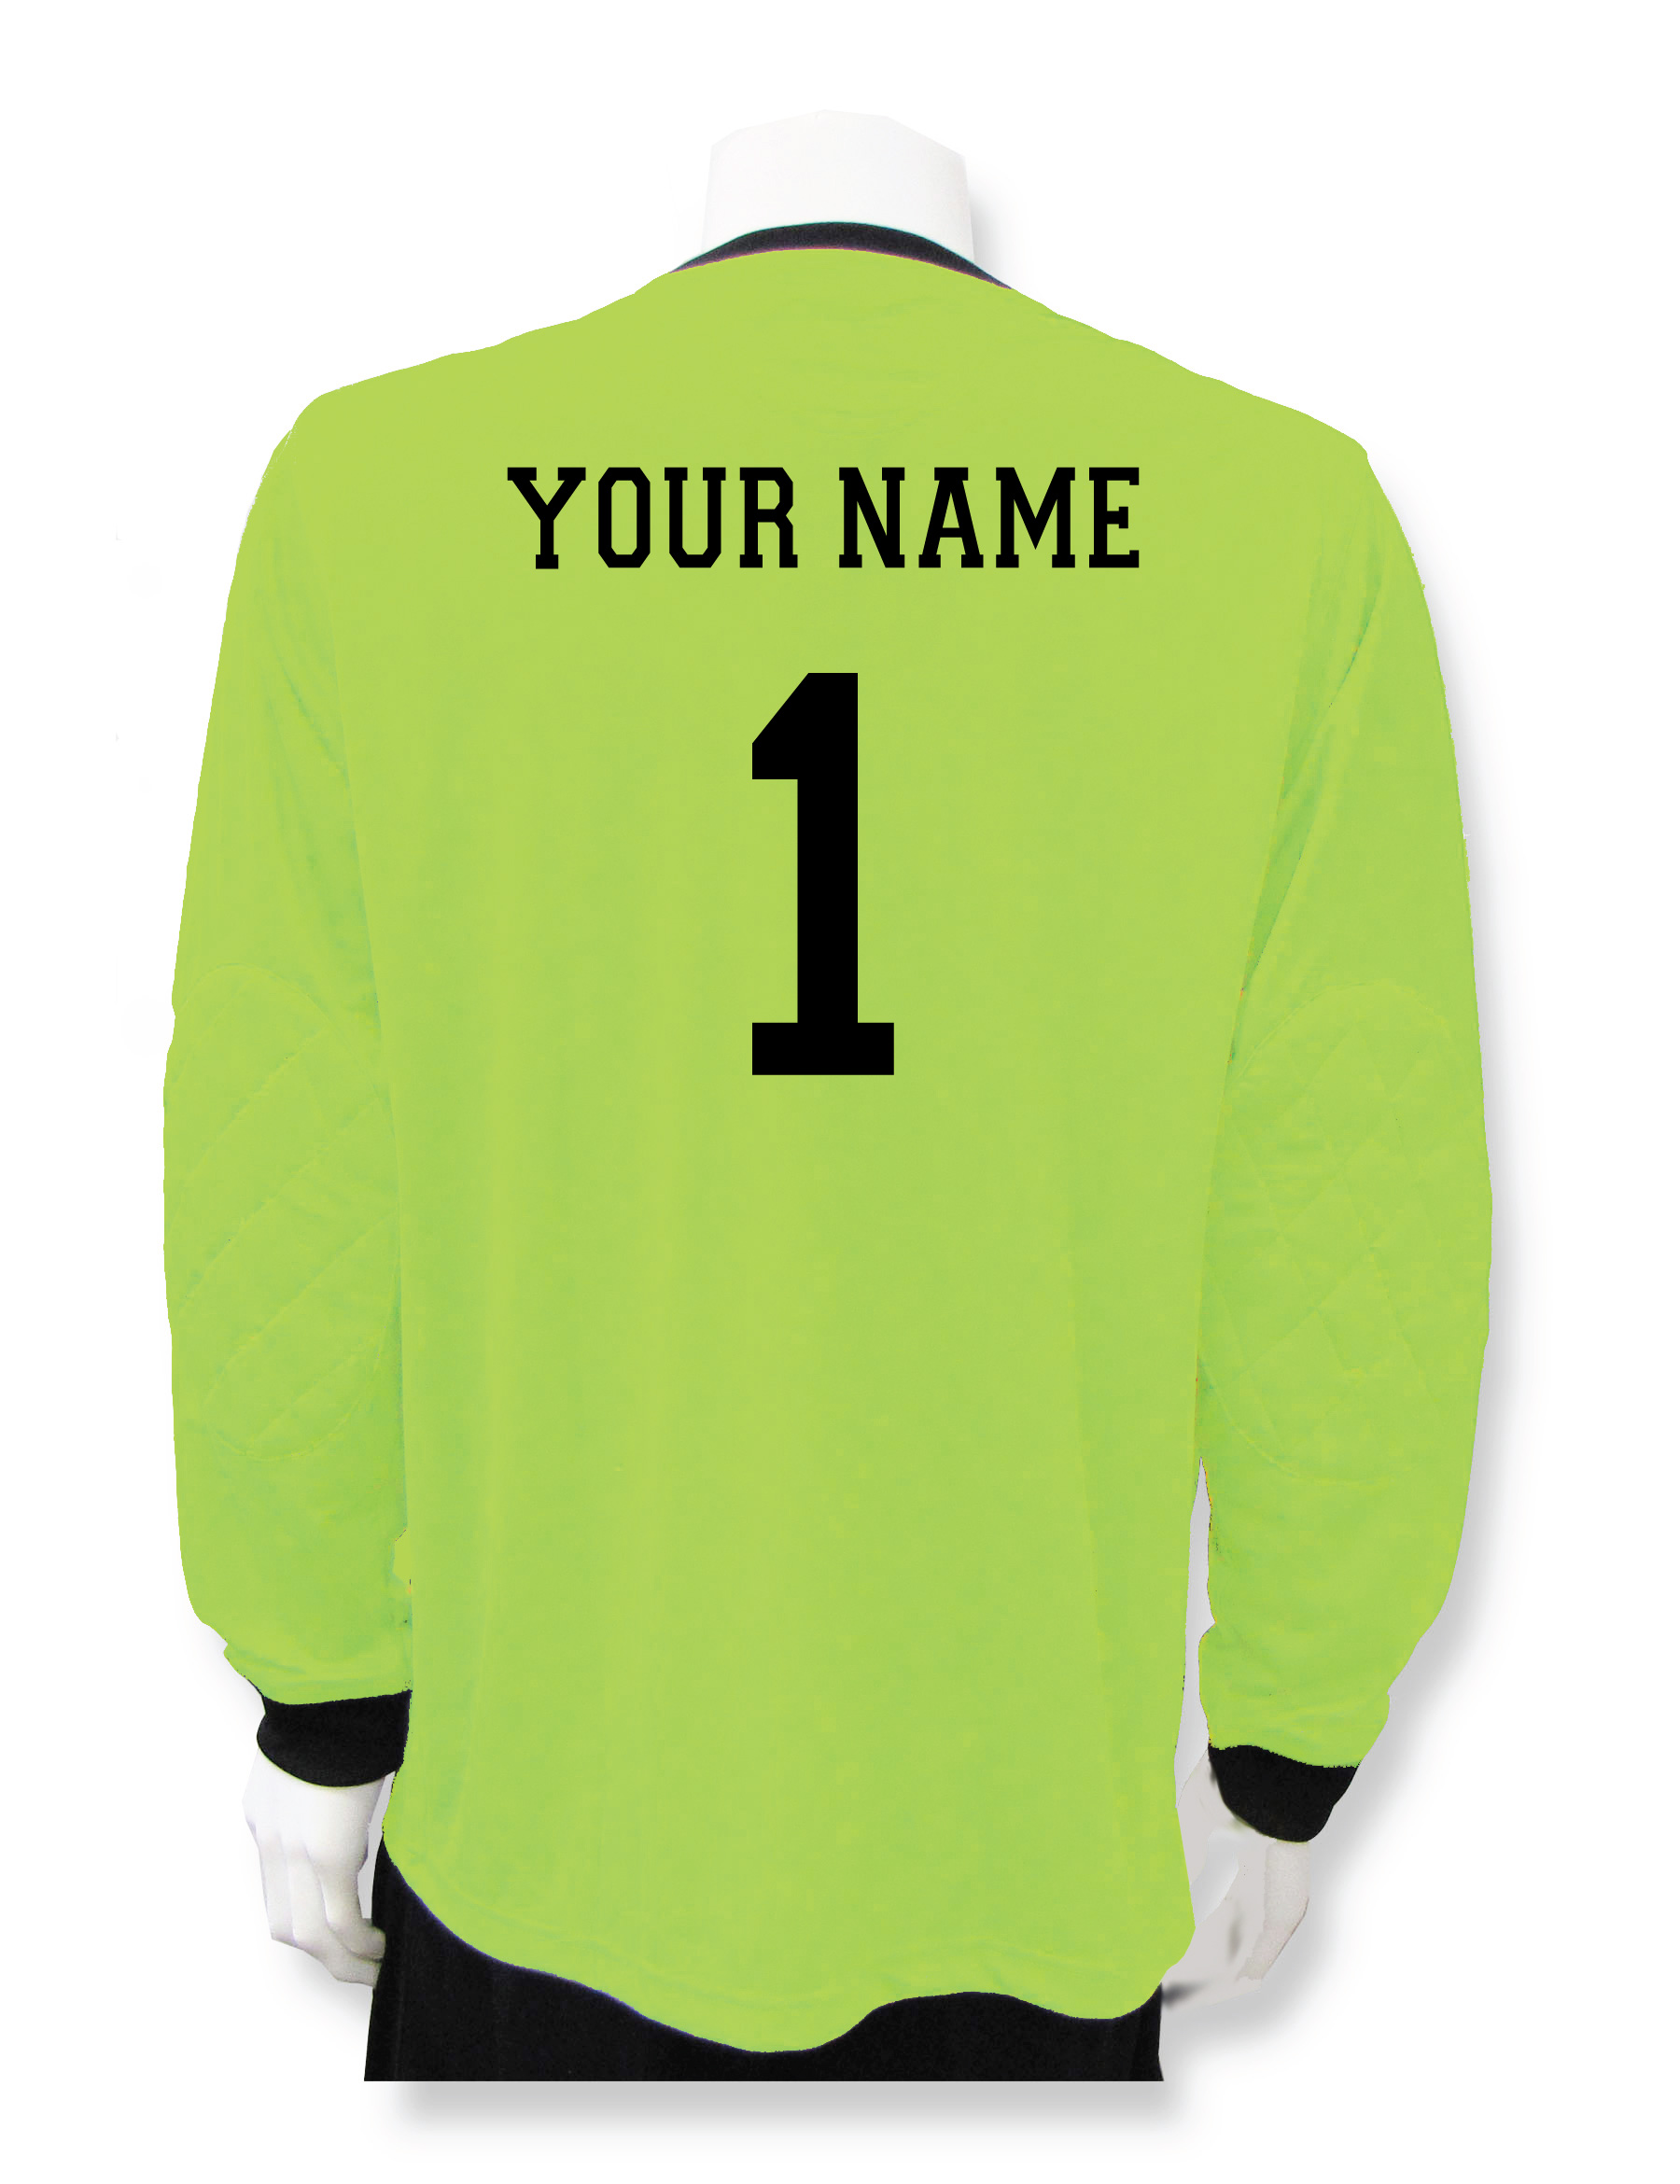 Long sleeve soccer goalie jersey in lime with name and number on back